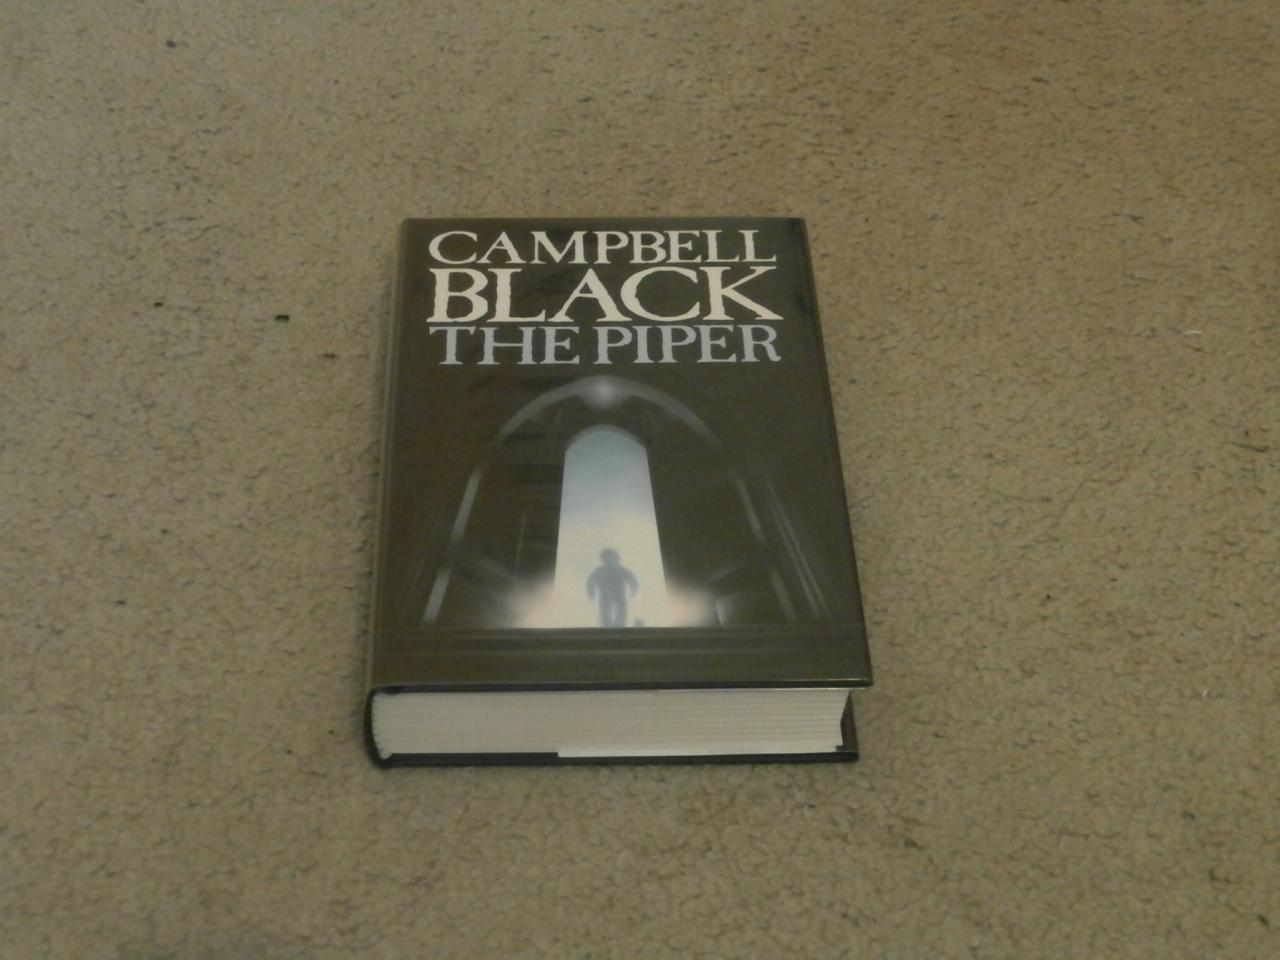 THE_PIPER_VFVF_SIGNED_UK_1ST_EDITION_HARDCOVER_11_Campbell_Black_Comme_Neuf_Couverture_rigide